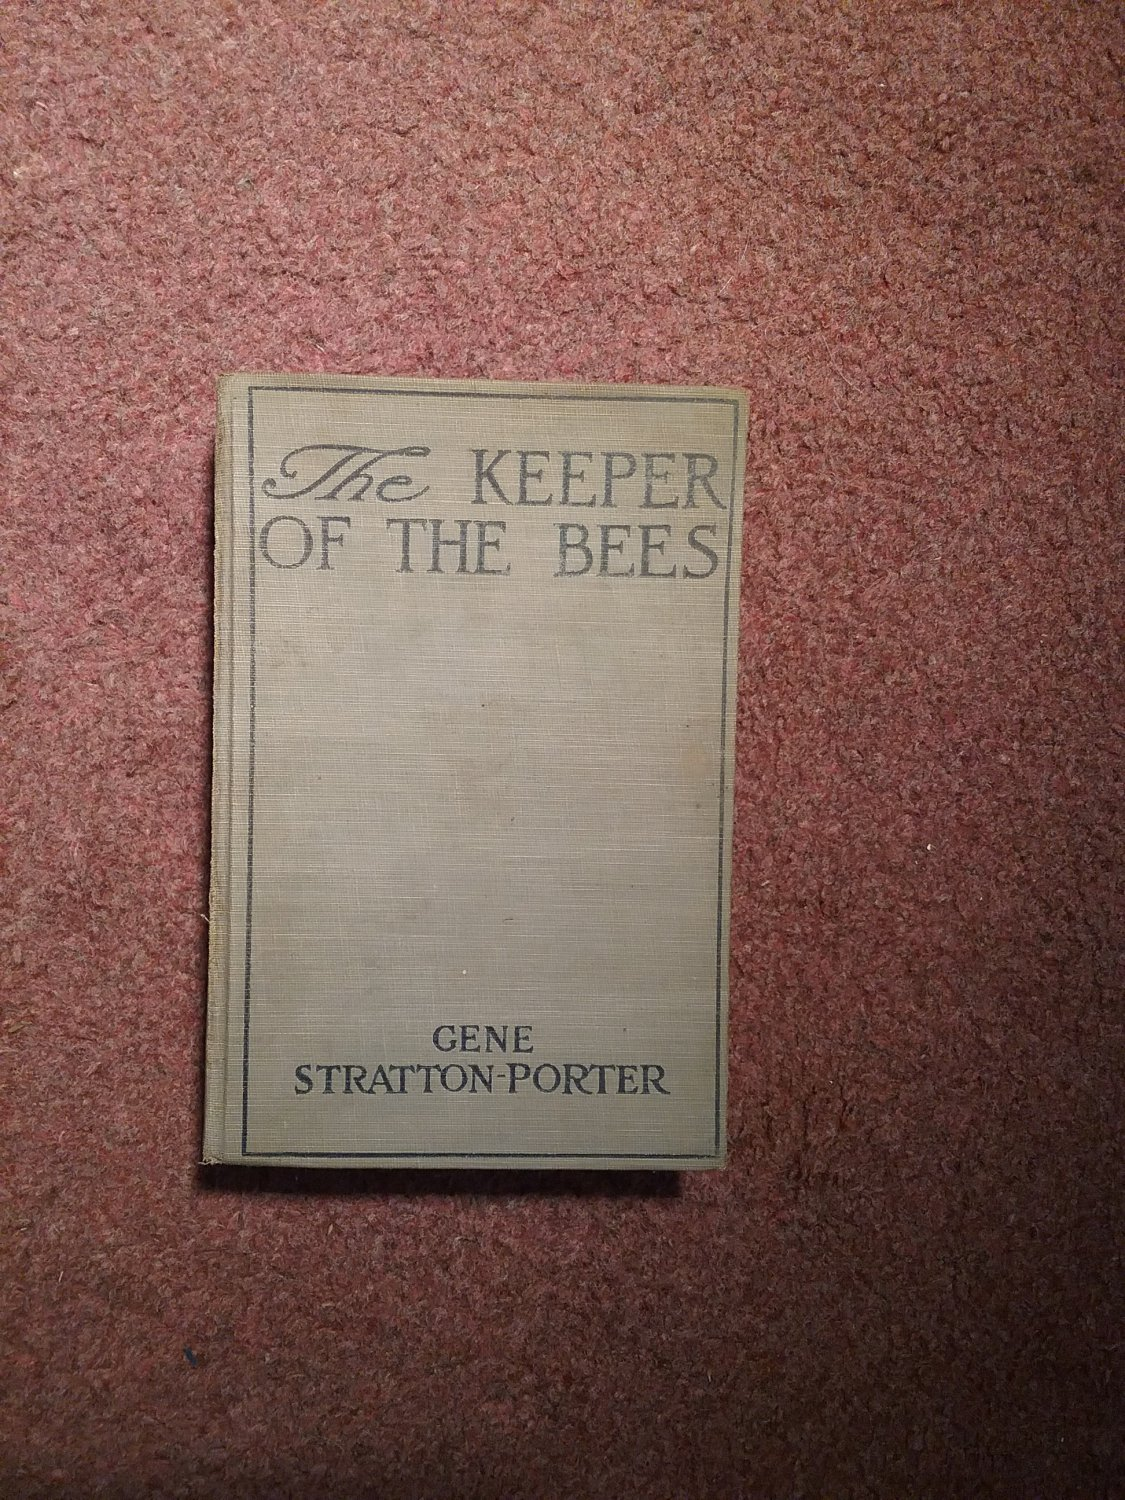 1925 The Keeper of The Bees, Gene Stratton-Porter  0707161497